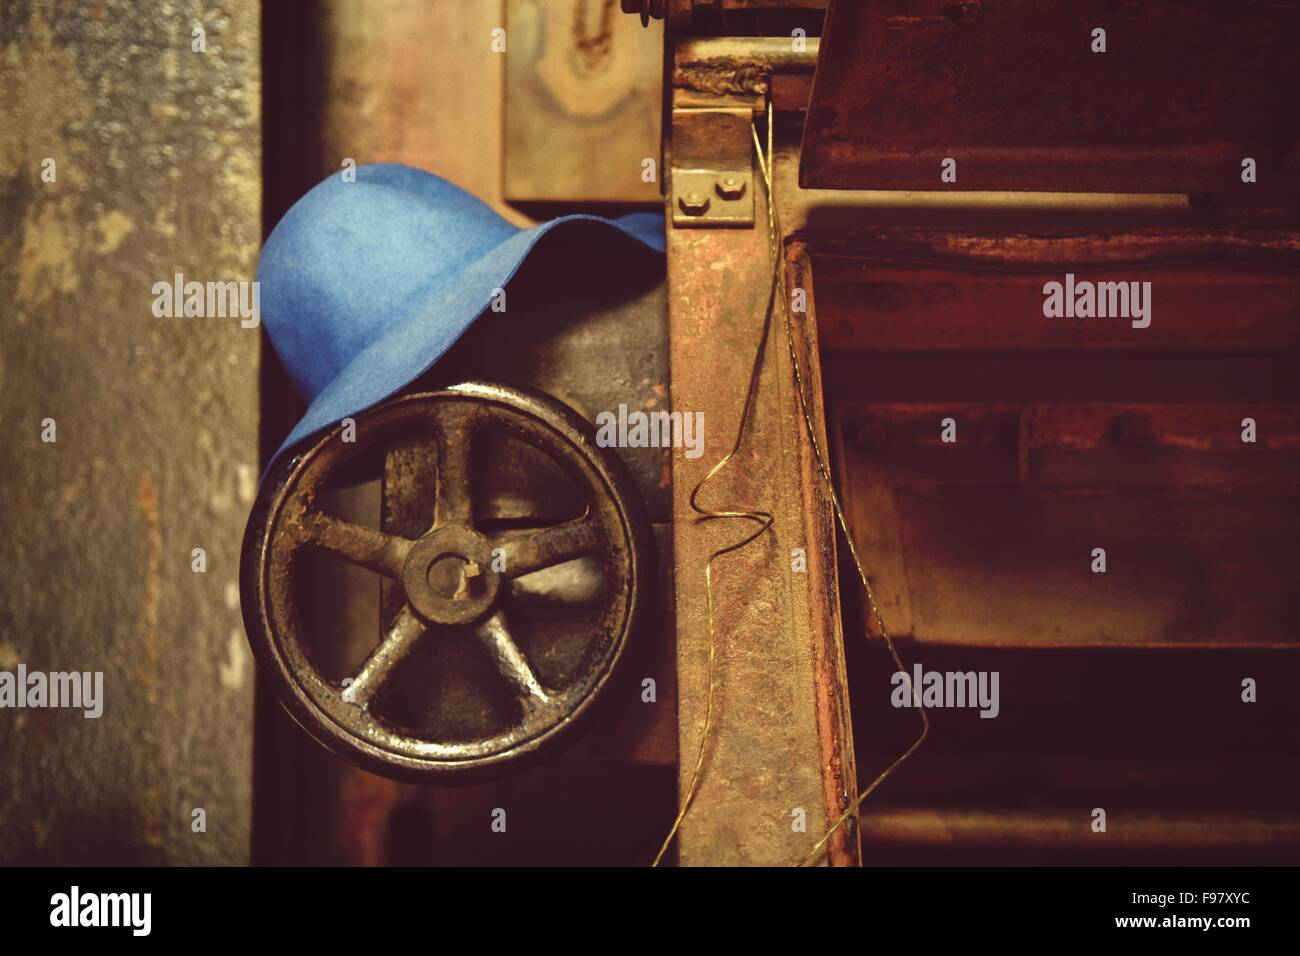 Close-Up Of Hat On Valve In Abandoned Factory - Stock Image